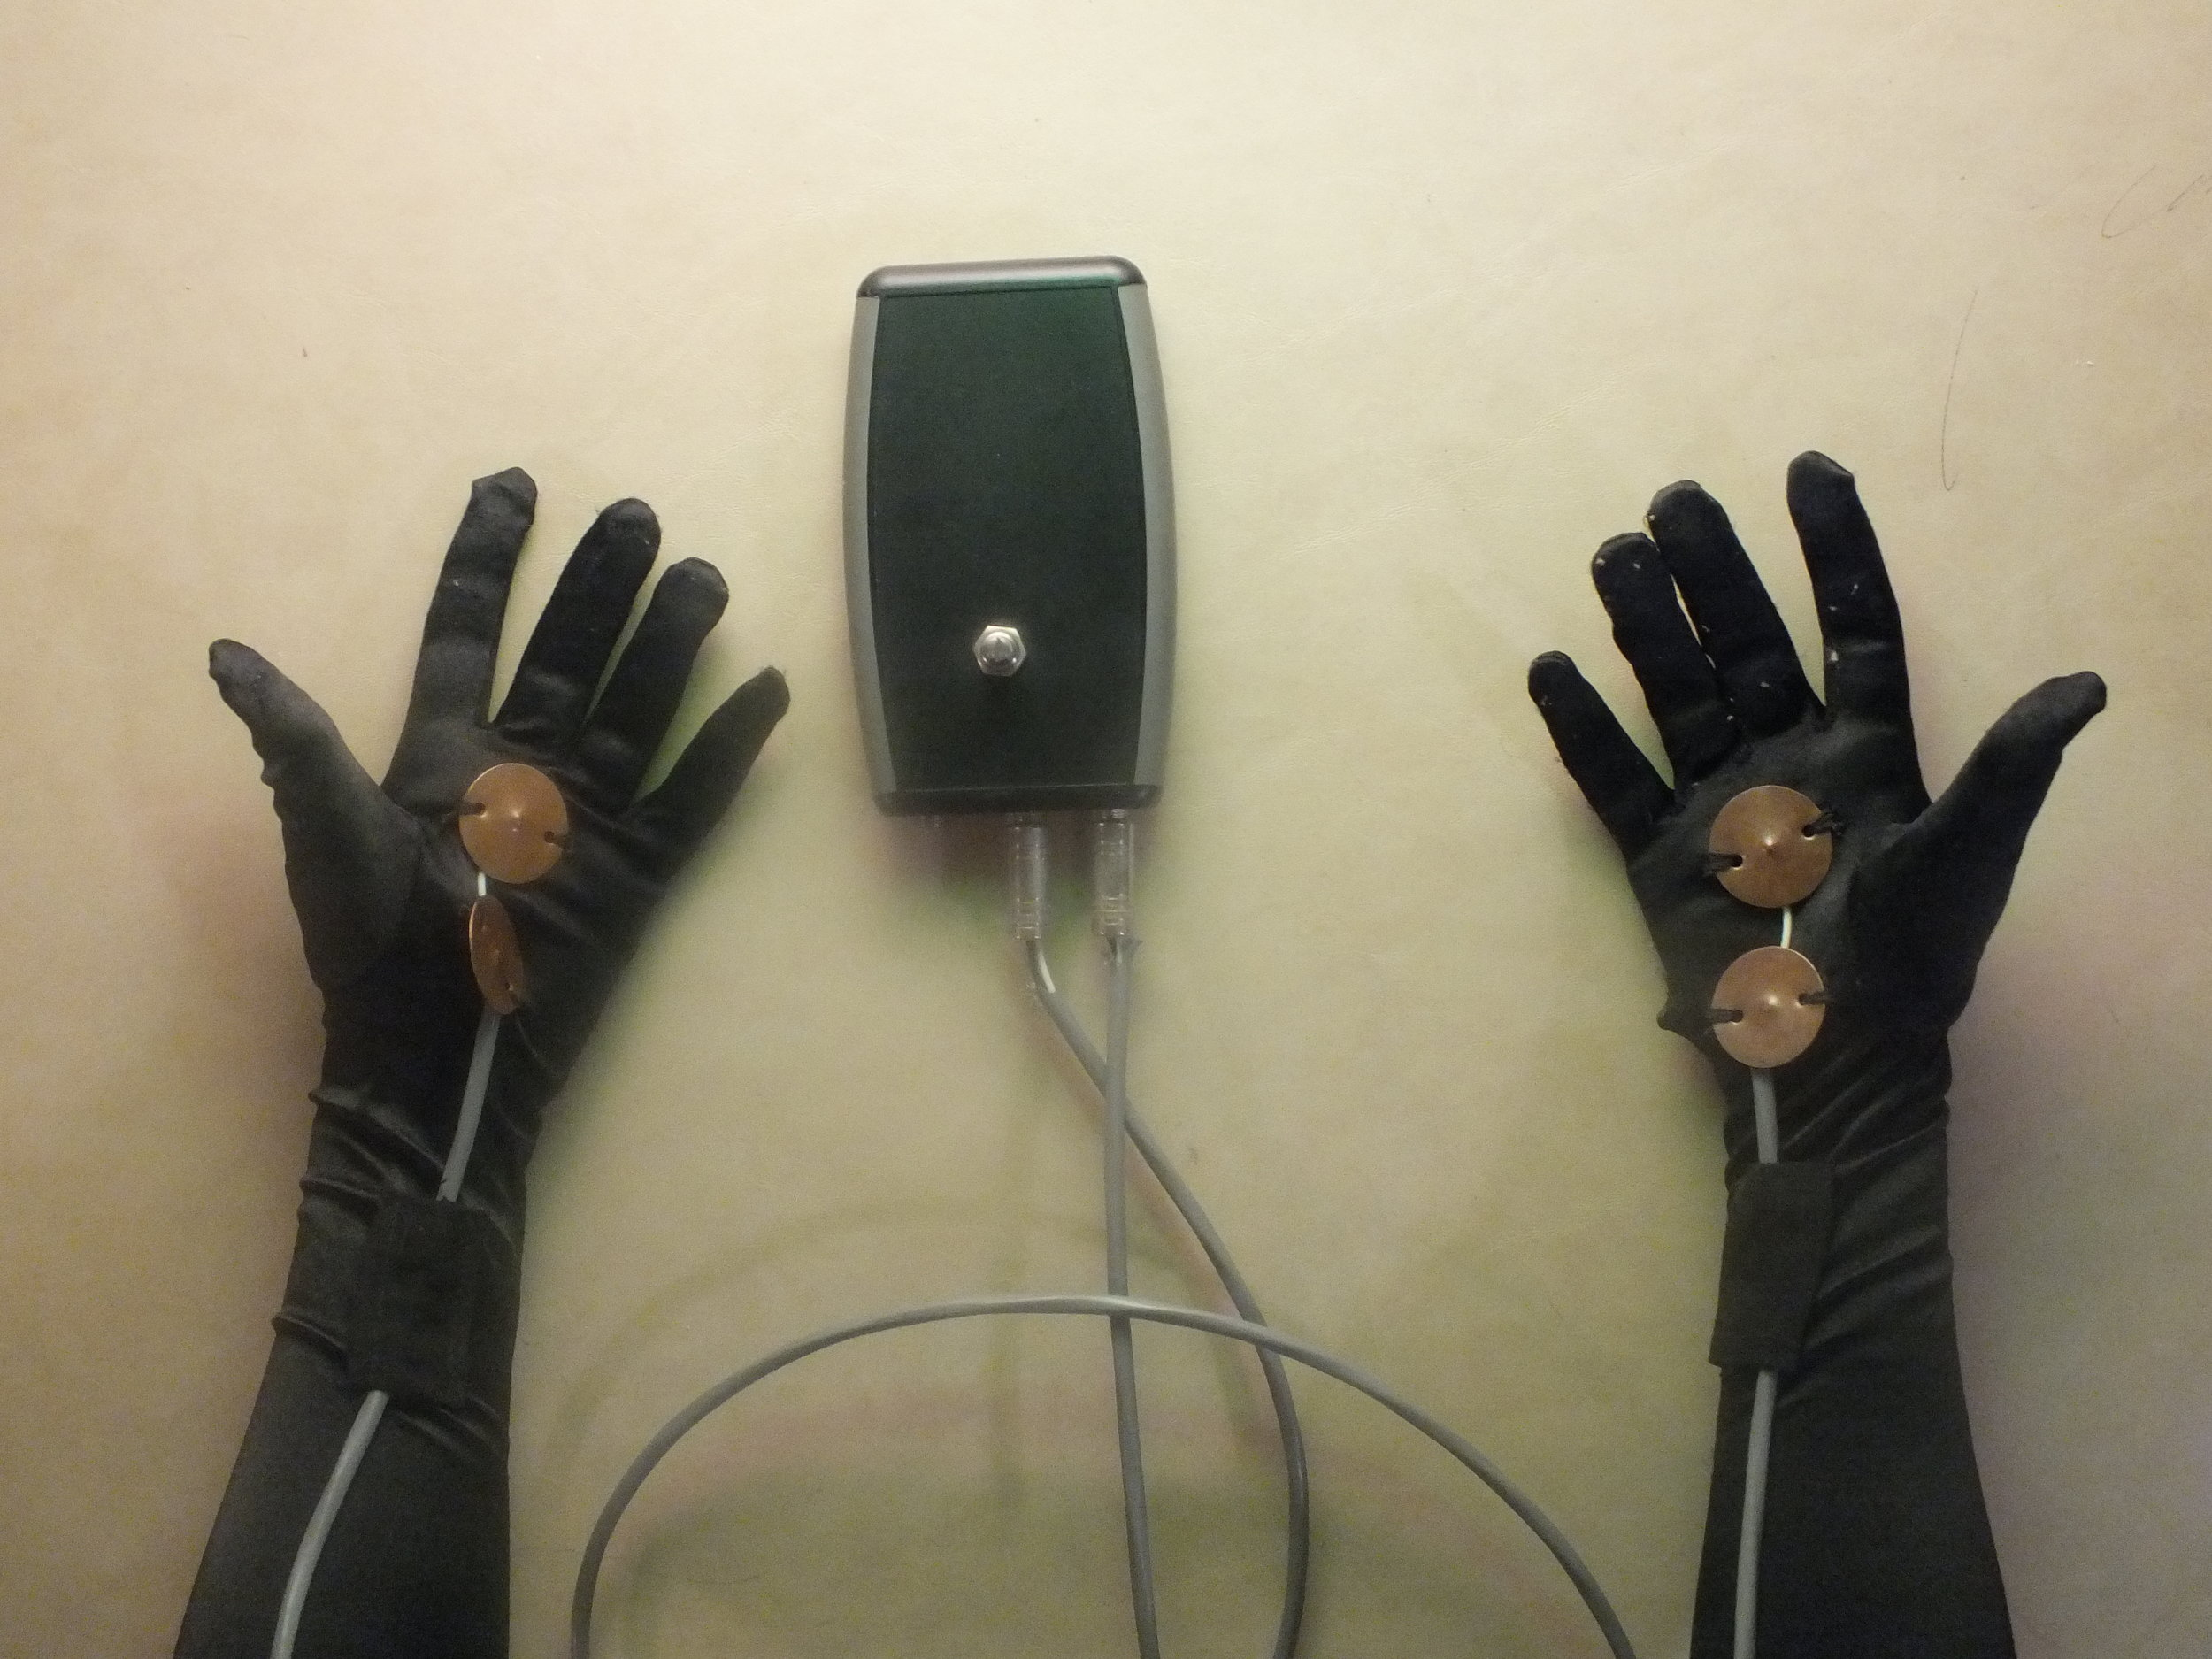 The  gloves  are inspired by multiple types of torture devices that focus on the hands on the victims such as the thumbscrews in which pressure was applied to the thumbs with a piece of wire, or gantlets in which iron cuffs placed around the wrist are tightened with a screw. This REI is made up of a pair of gloves outfitted with copper discs connected to a bent amplifier circuit that produces an electronic scream when touched to bare skin and with one another. With this instrument, the SD2 is able to experiment with the sound of her own body, the skin of the other dancers, and the audience members transgressing the performer/observer barrier